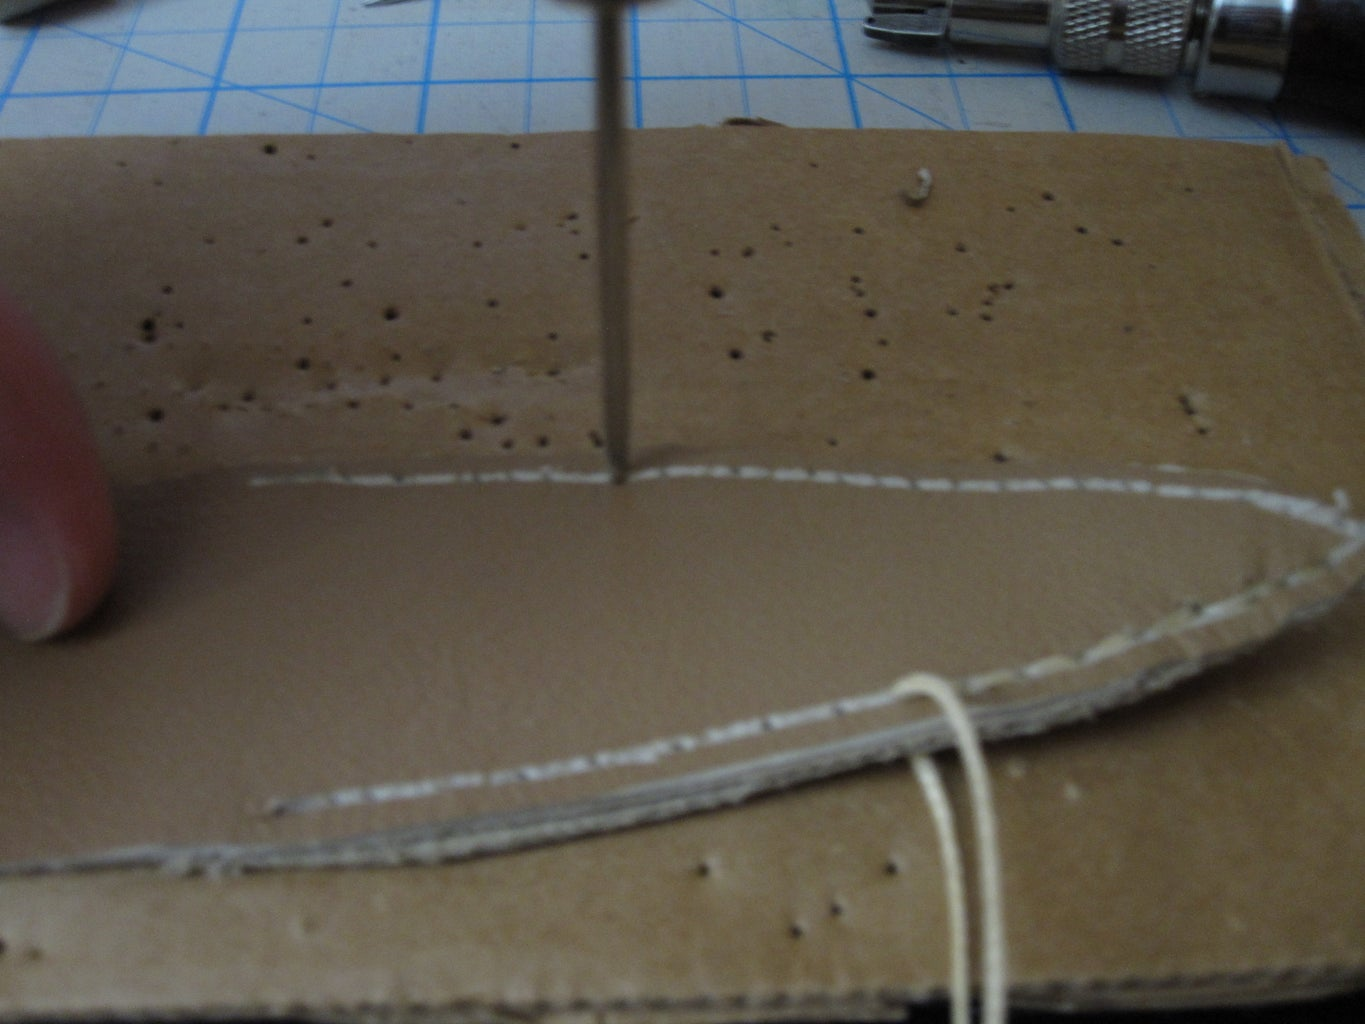 Grooving and Preparation for Stitching